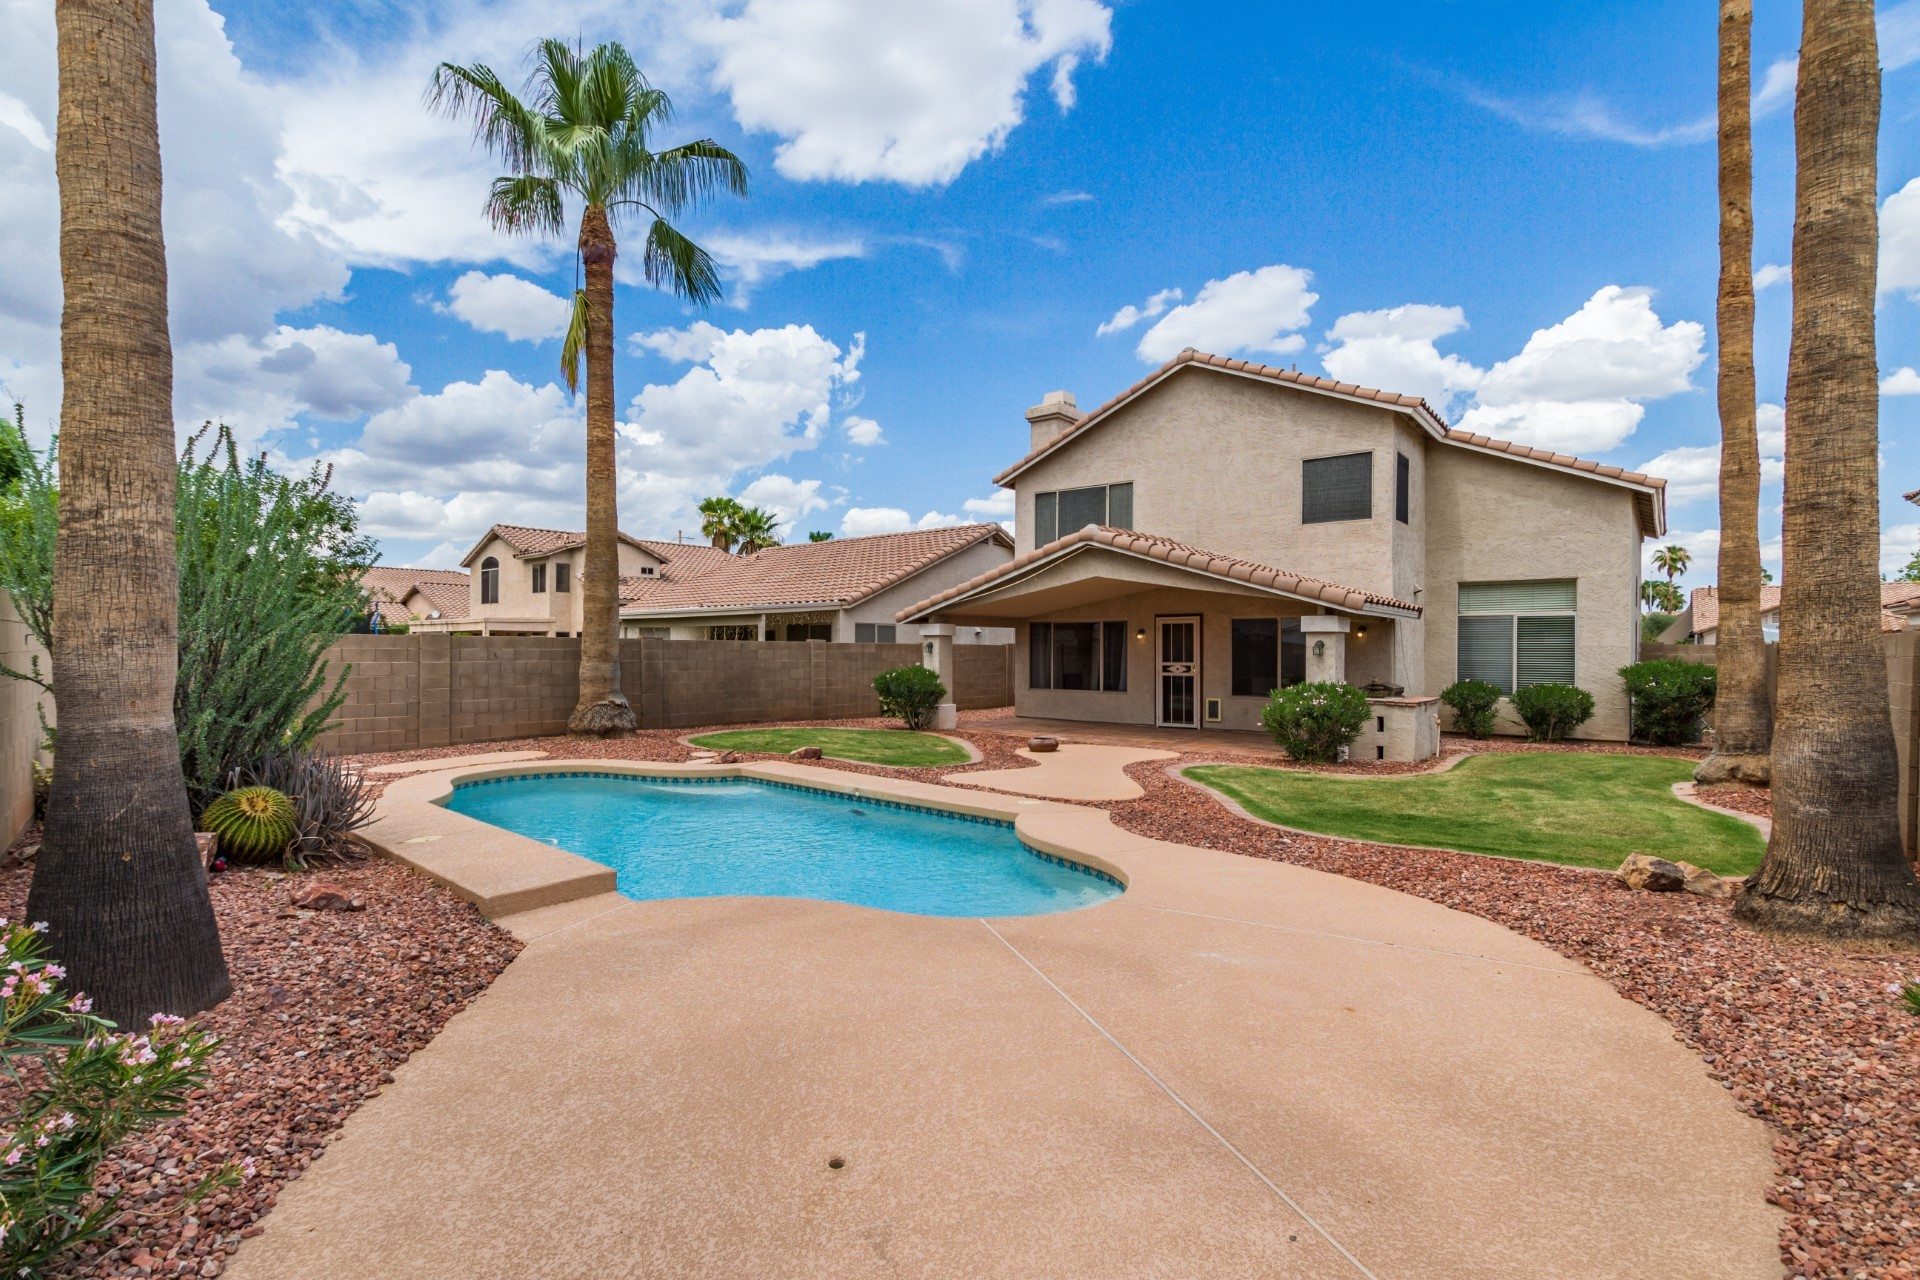 1309 W Lark Dr. <a href='https://vic.freeagentproperties.com/index.php?types[]=1&types[]=2&areas[]=city:Chandler&beds=0&baths=0&min=0&max=100000000&map=0&quick=1&submit=Search' title='Search Properties in Chandler'>Chandler</a> AZ 85286